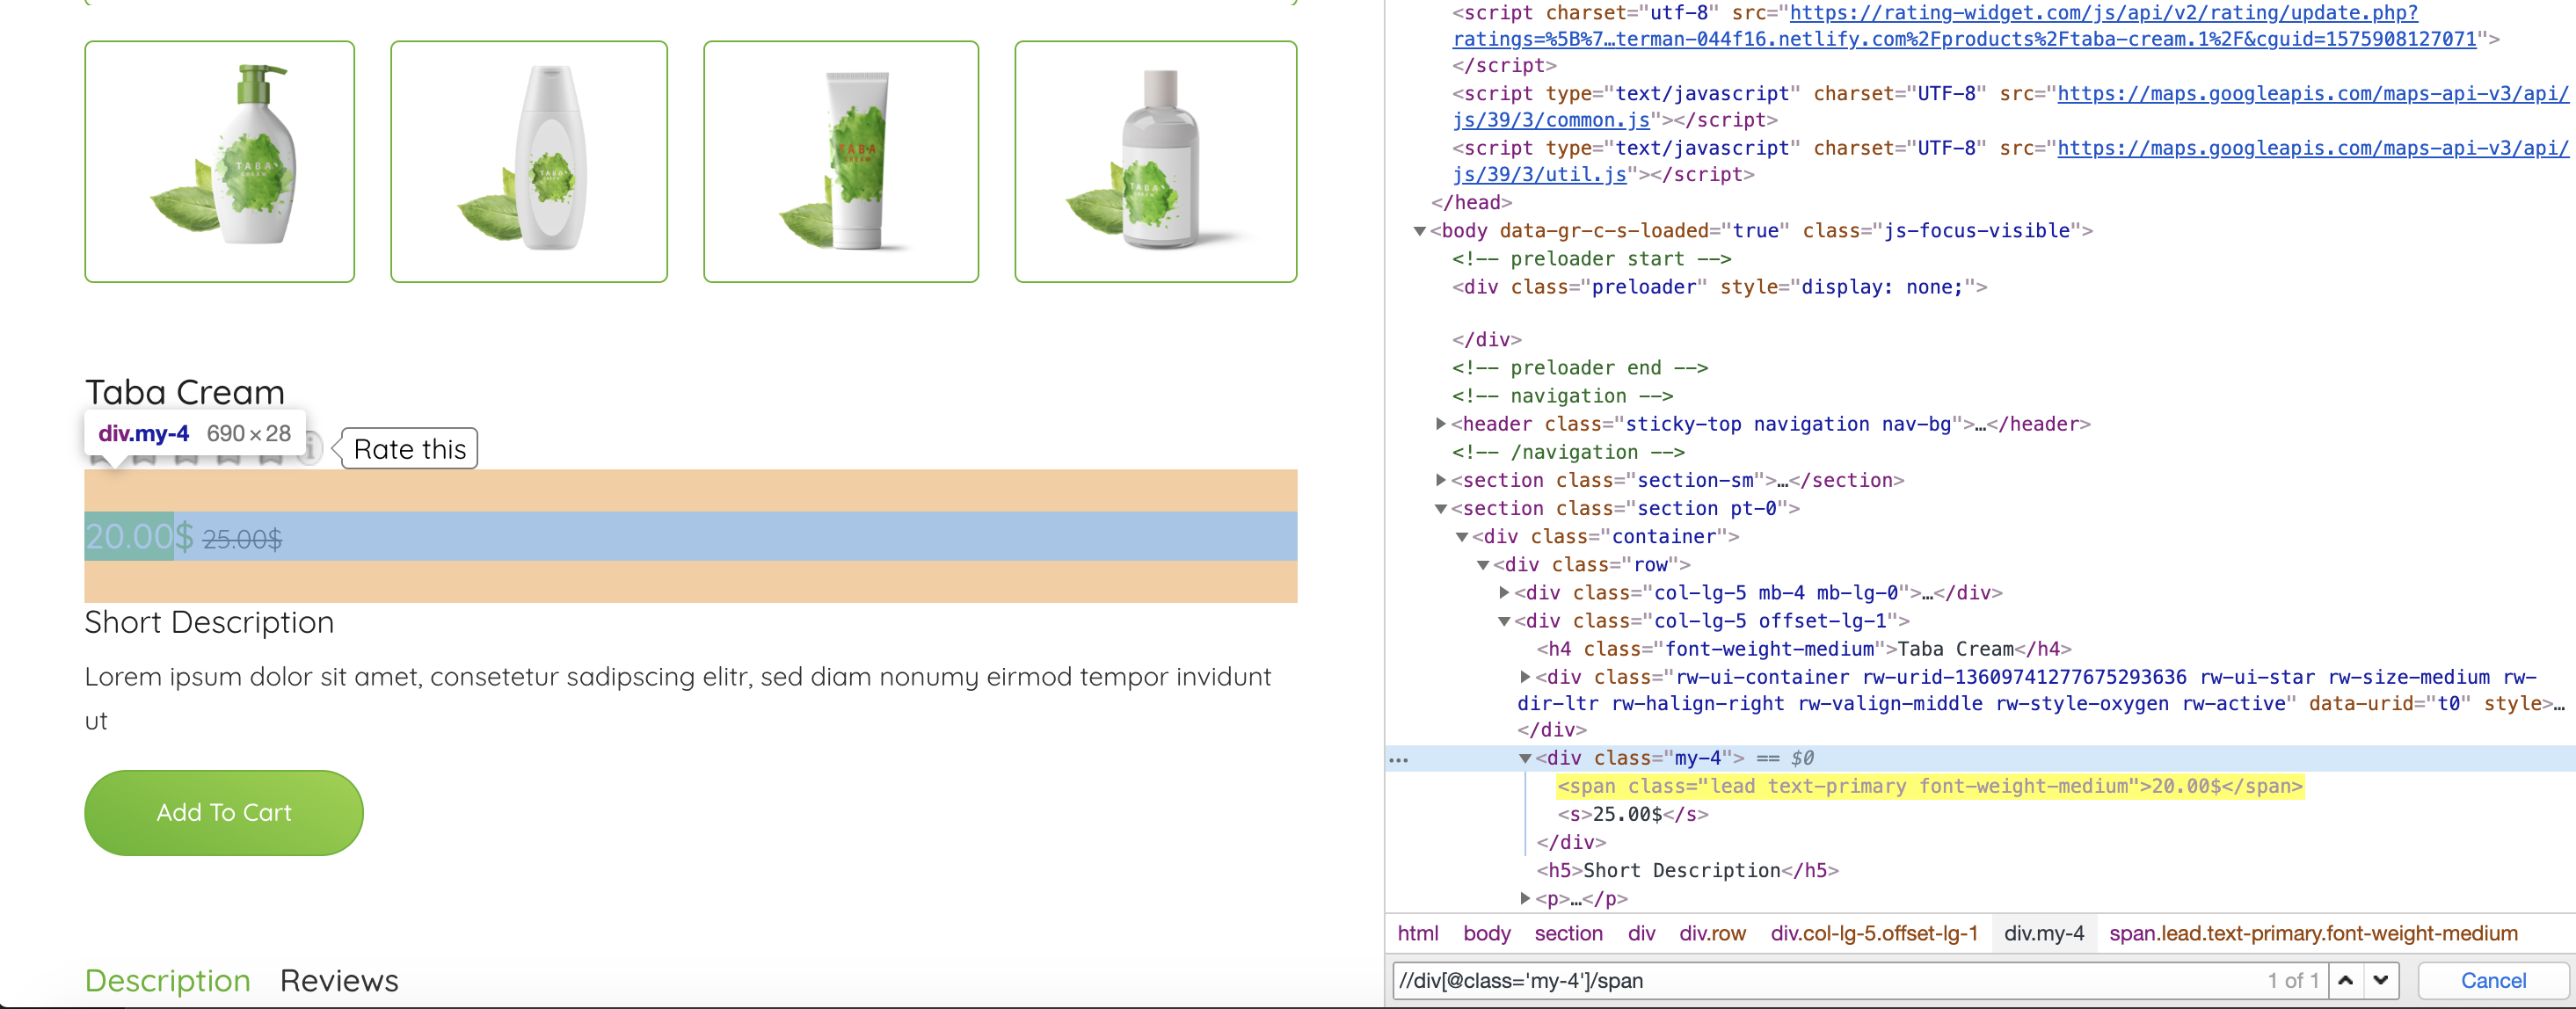 HTML from an E-commerce website